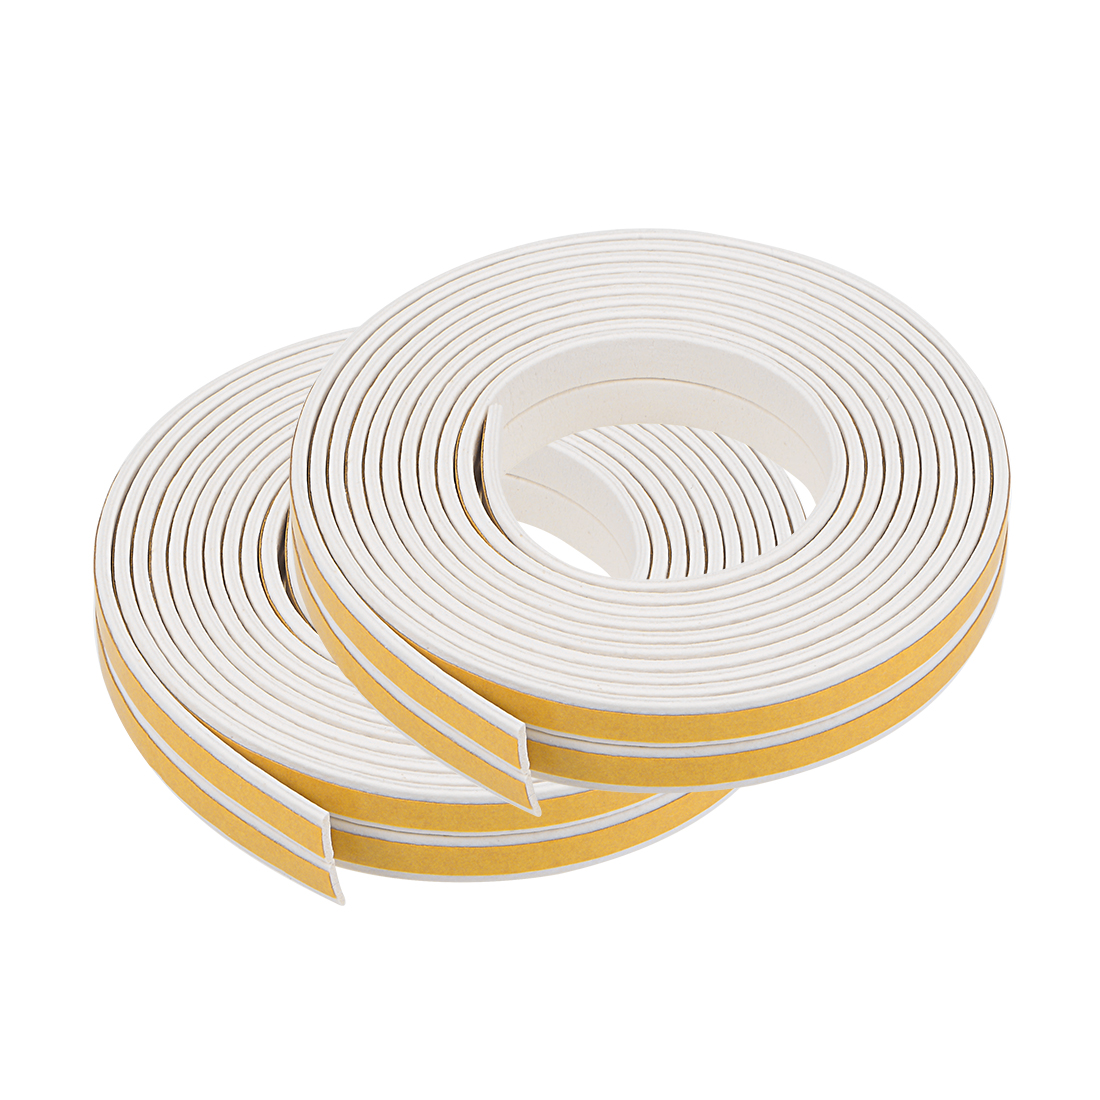 Foam Tape Adhesive 9mm Wide 2mm Thick, Total 32.8 Feet White 4Pcs